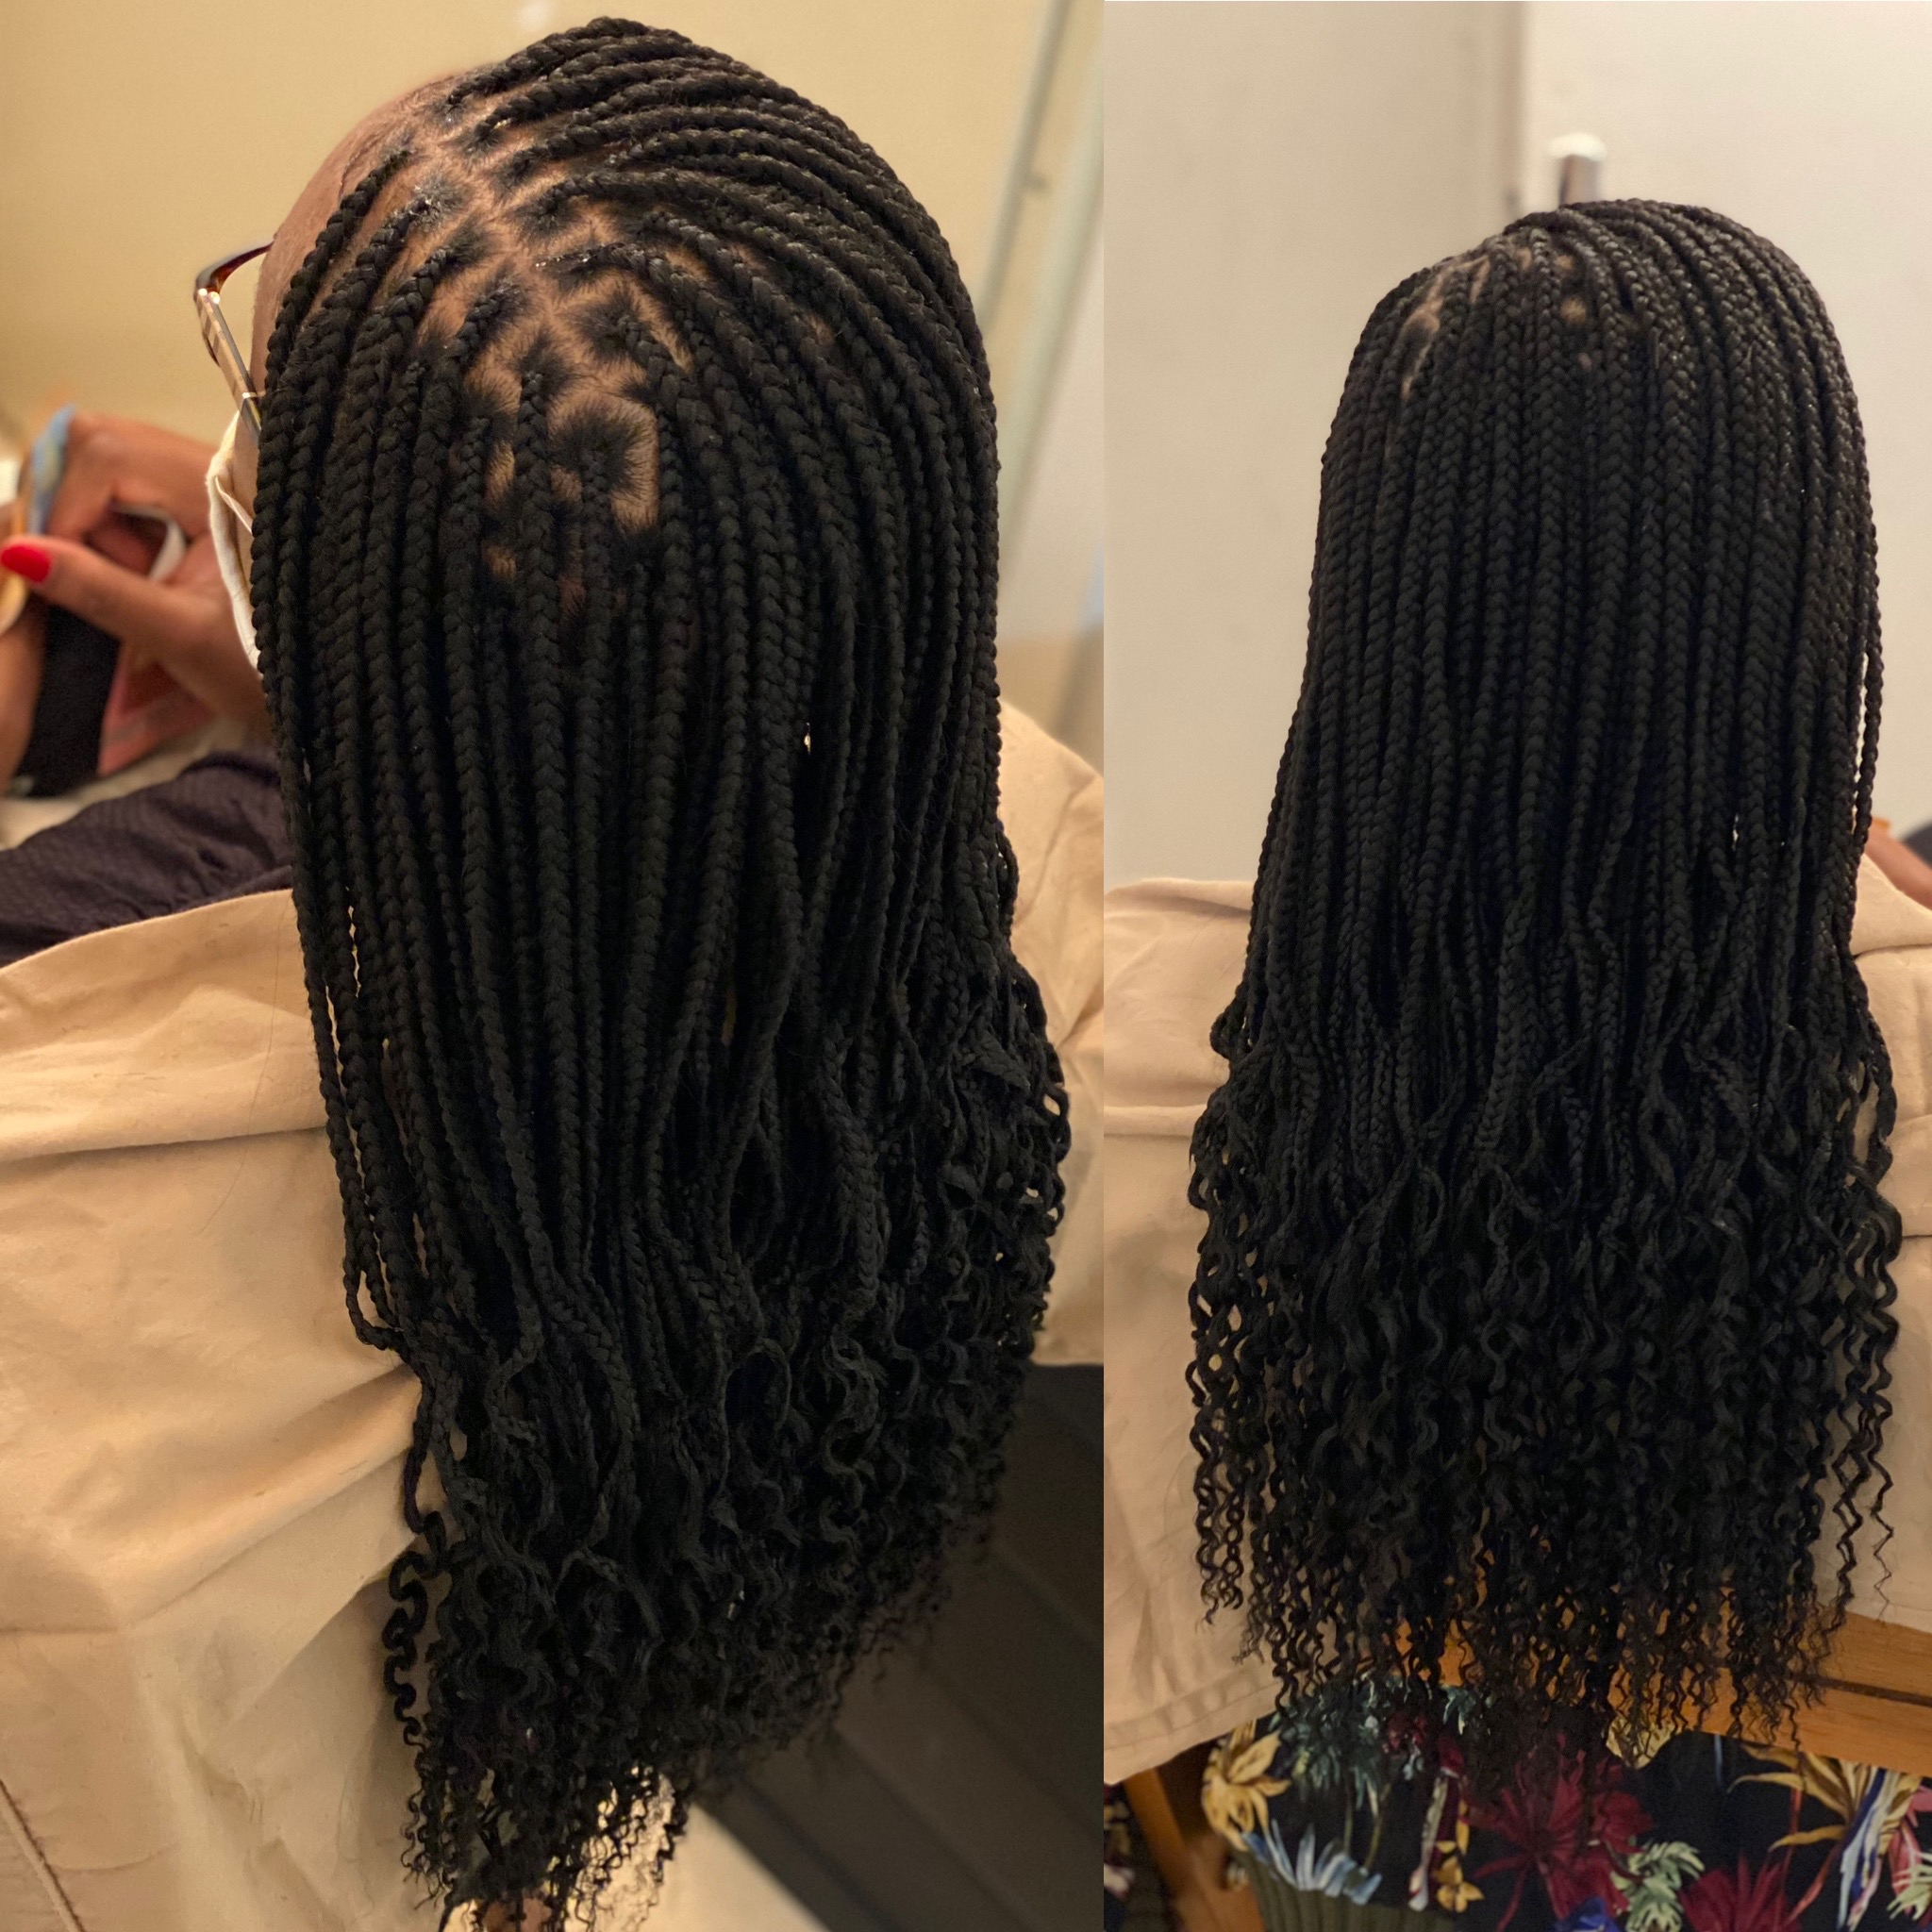 salon de coiffure afro tresse tresses box braids crochet braids vanilles tissages paris 75 77 78 91 92 93 94 95 OVTHEVDF